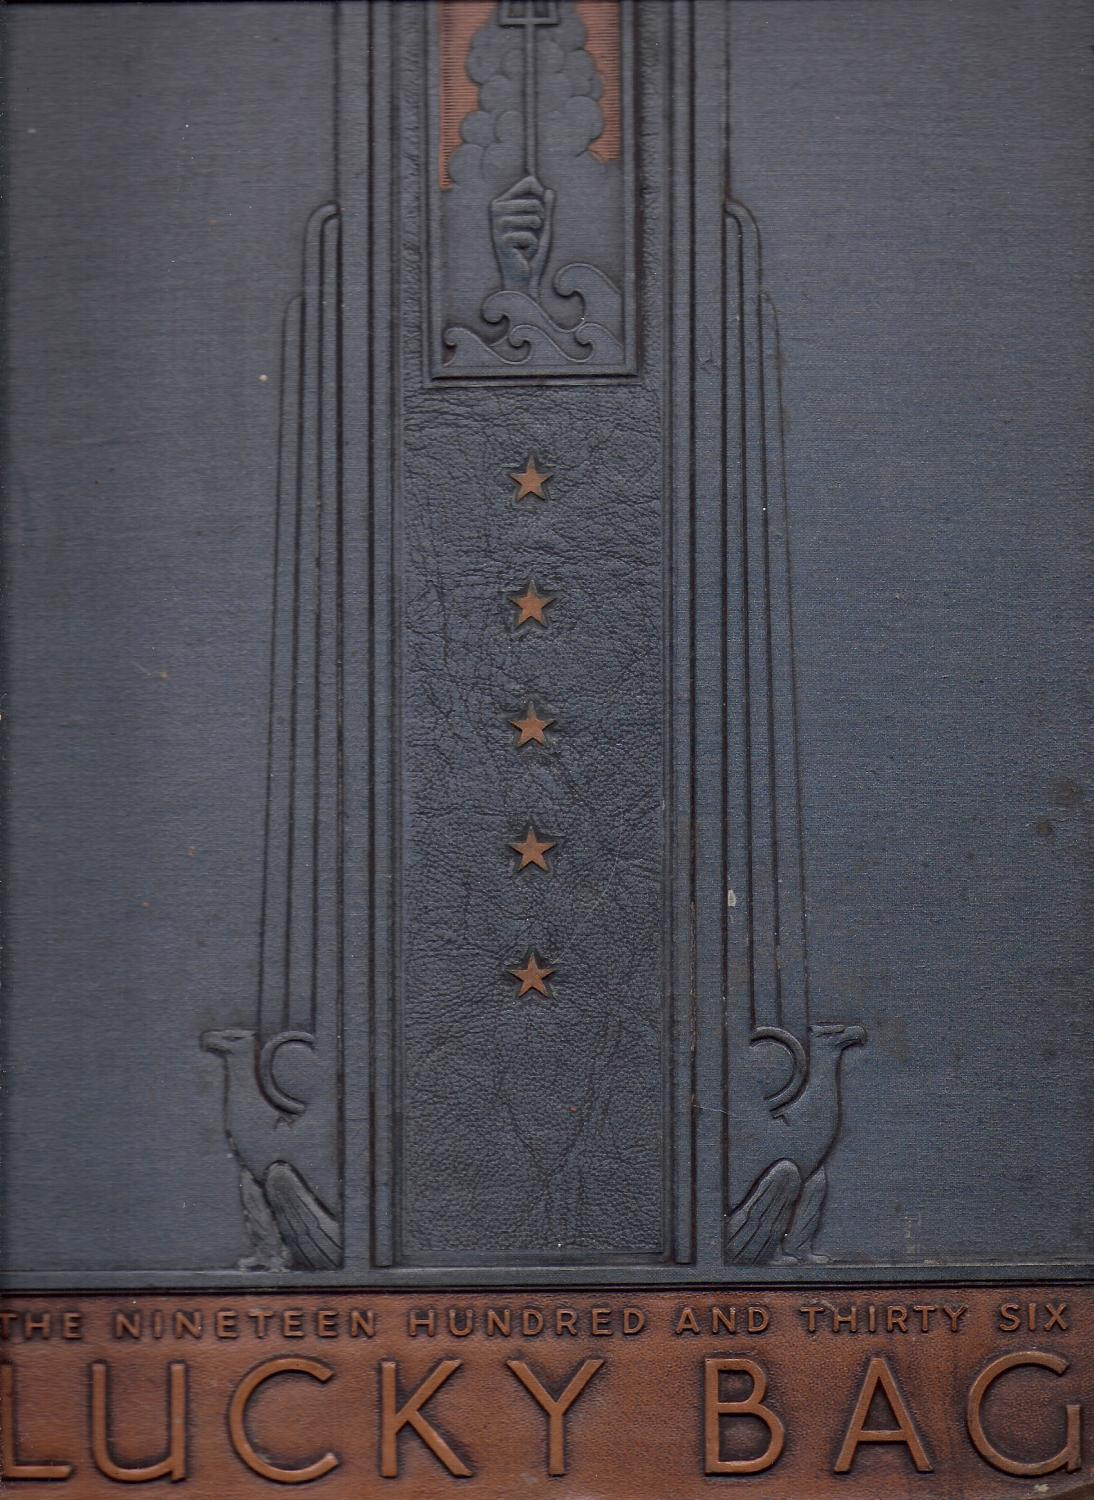 Nineteen Hundred and Thirty Six Lucky Bag. The 1936 Annual of the Regiment of Midshipmen OVERSIZE Crutchfield, J. R. et al. Hardcover Demy folio, [31cm/12.5 inches], full fancy, gilt-embossed coloured cloth, sans dust jacket, pp. 554, indexed. Fully Illustrated with b-w halftone phot